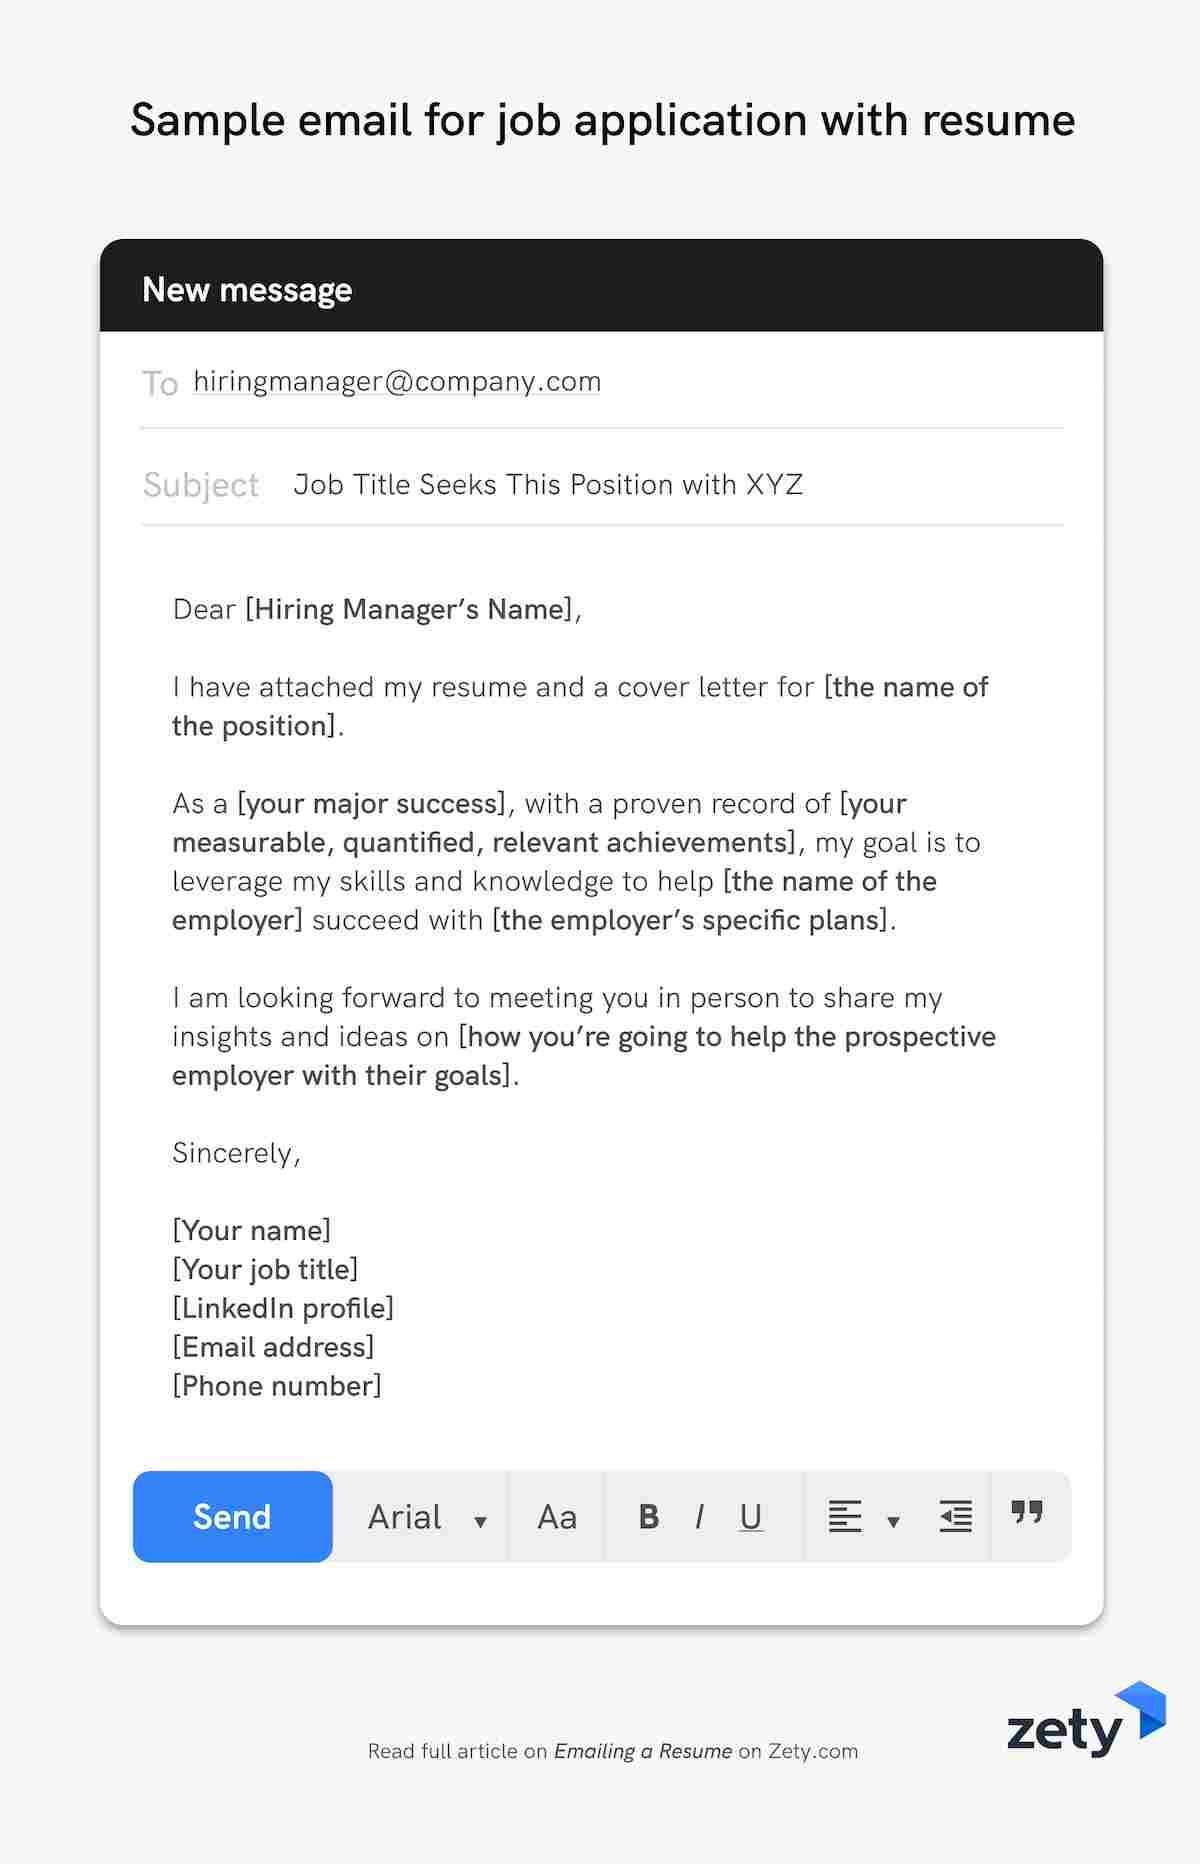 emailing resume job application email samples writing an with sample for freelance Resume Writing An Email With Resume